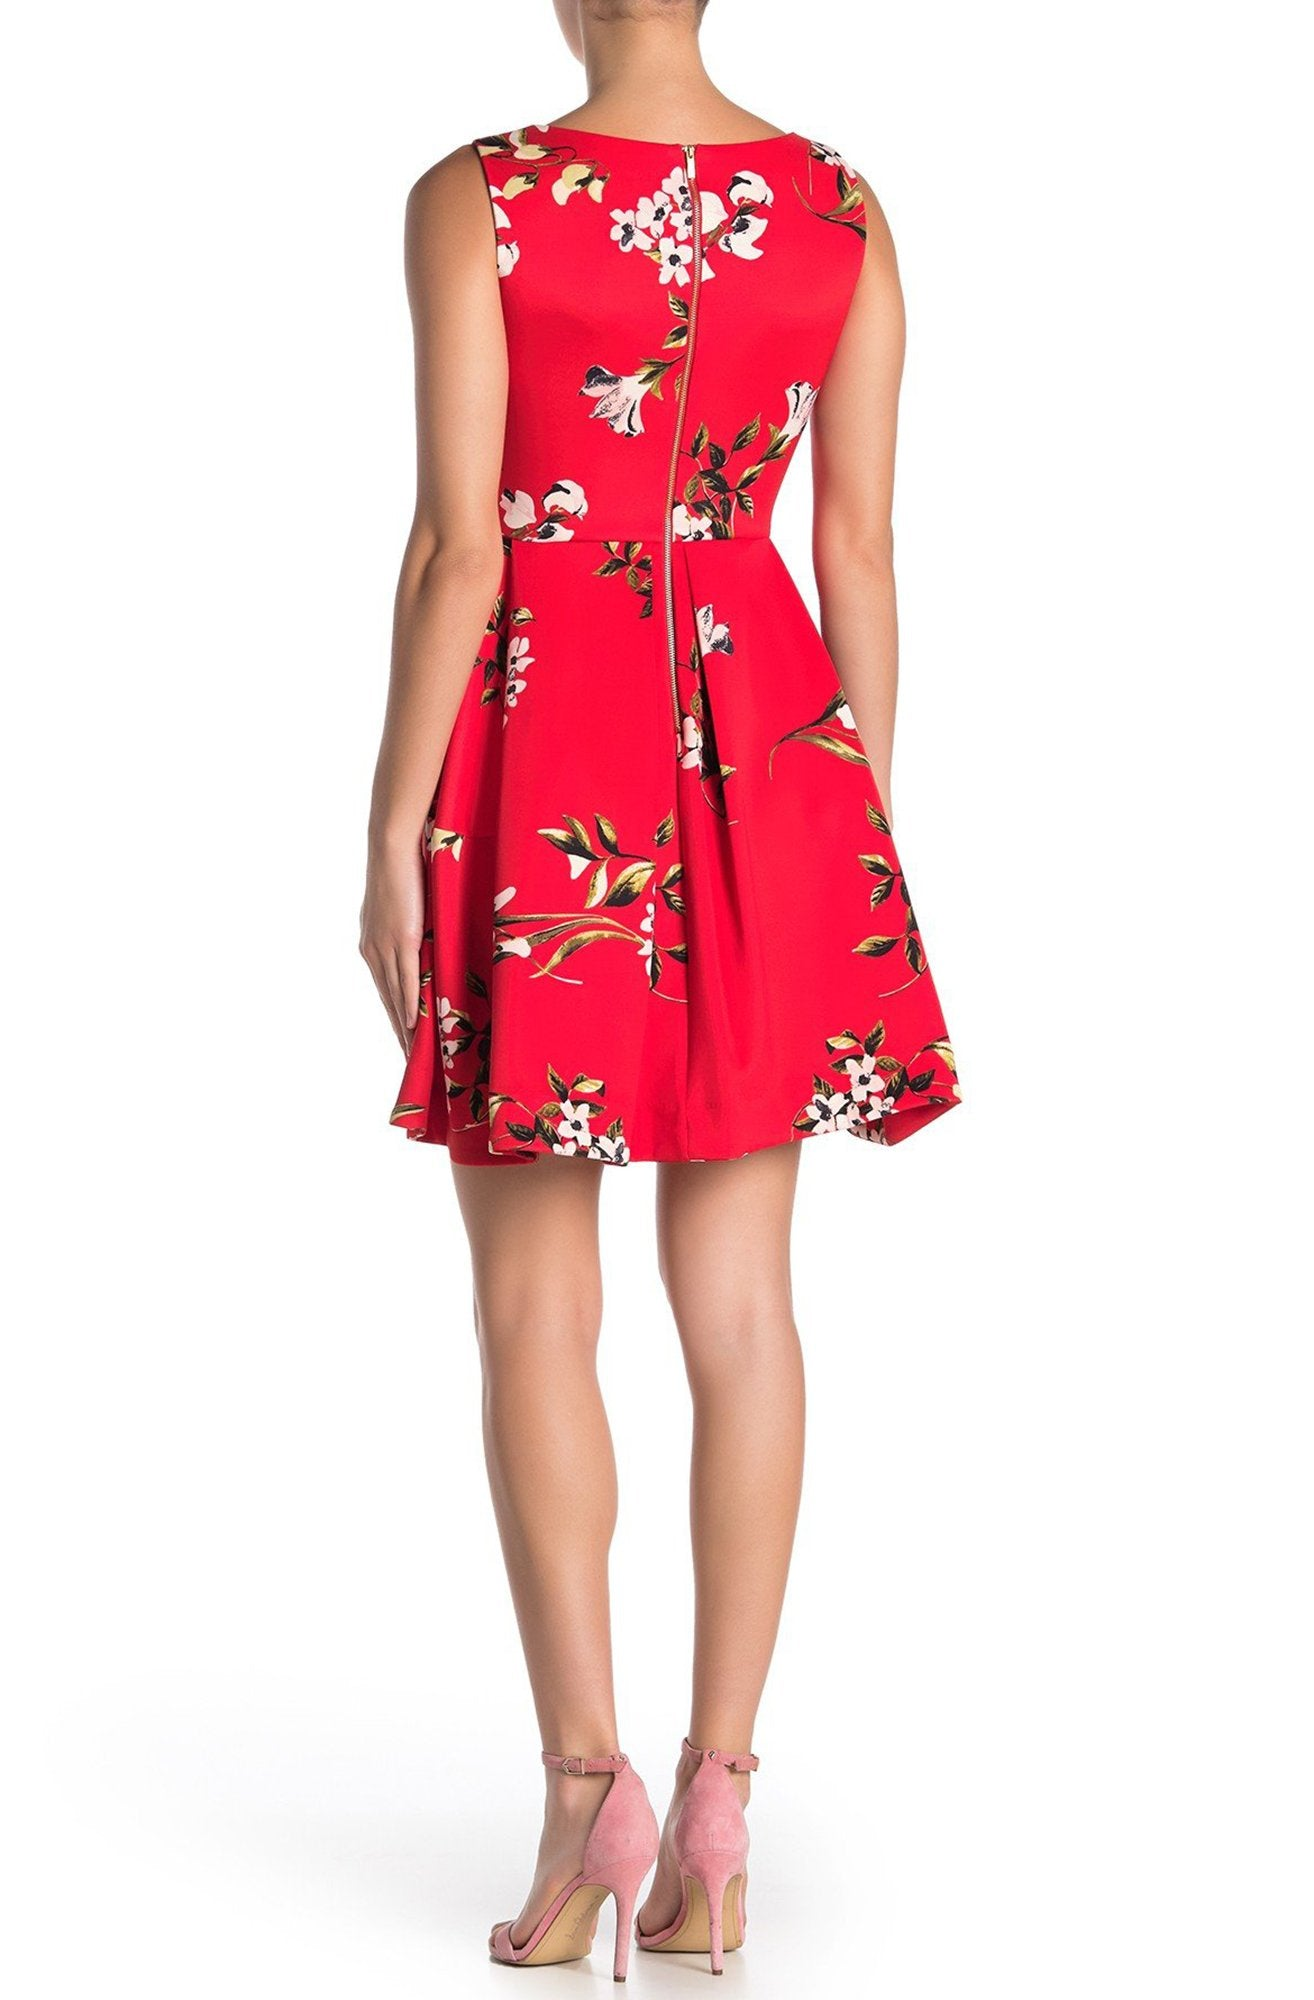 Taylor - 1534M Short Bateau Neck Floral A-Line Dress In Red and Floral